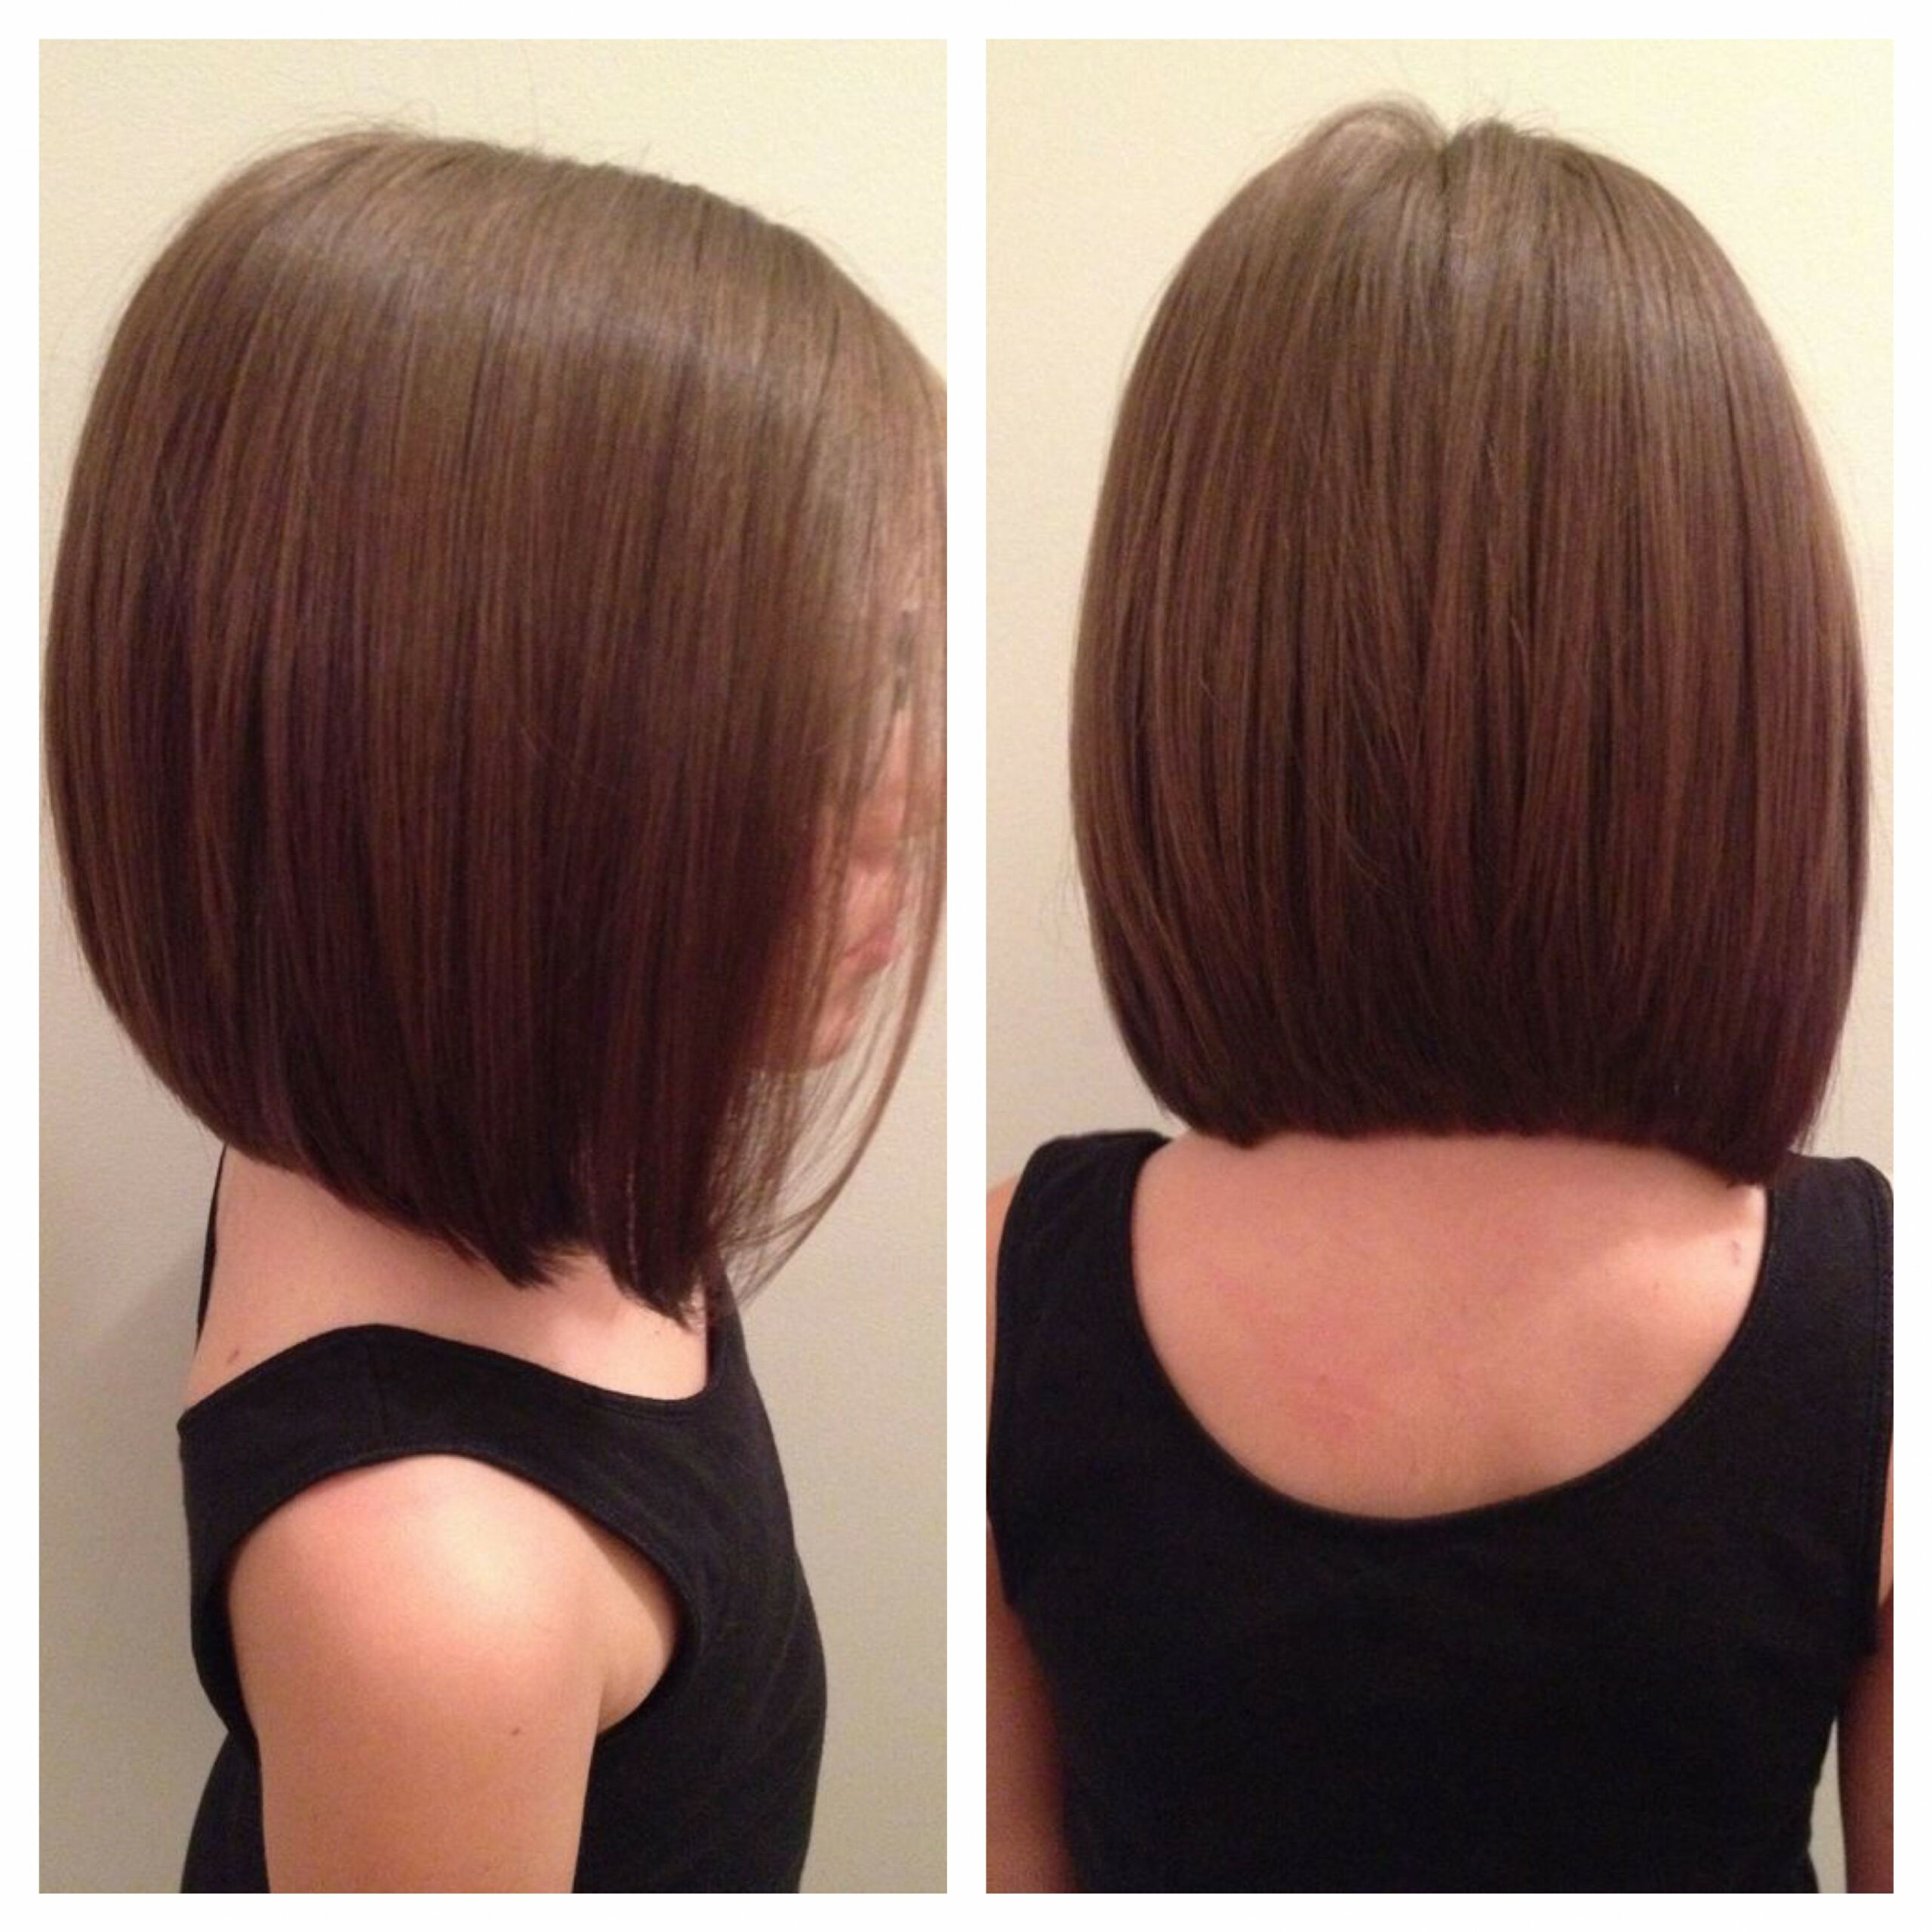 Pin on Стрижка девочке bob cut hairstyle for girl